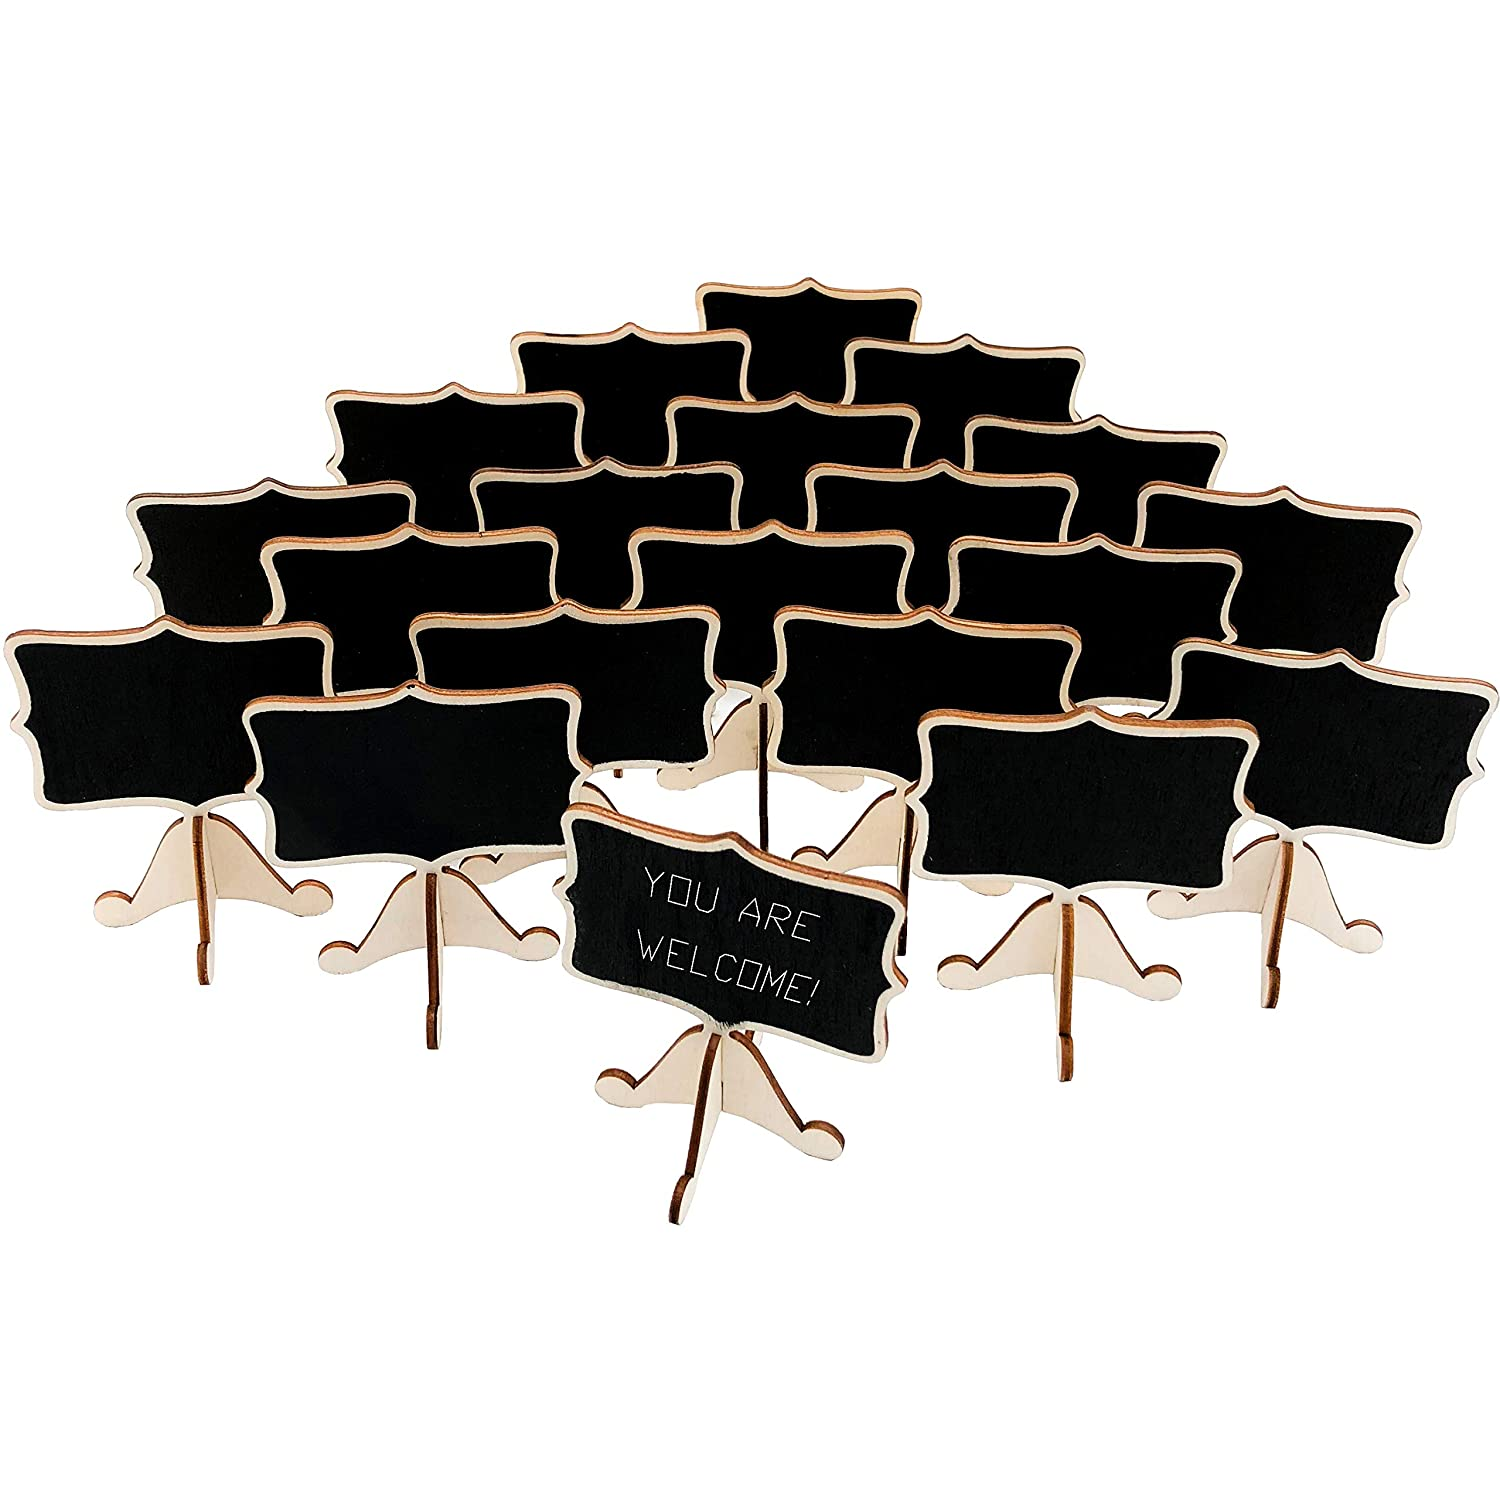 20 Pcs Wood Mini Chalkboard Signs with Support Easels, Place Cards, Small Rectangle Chalkboards Blackboard for Weddings, Birthday Parties, Table Numbers, Message Board Signs and Event Decorations Coofficer